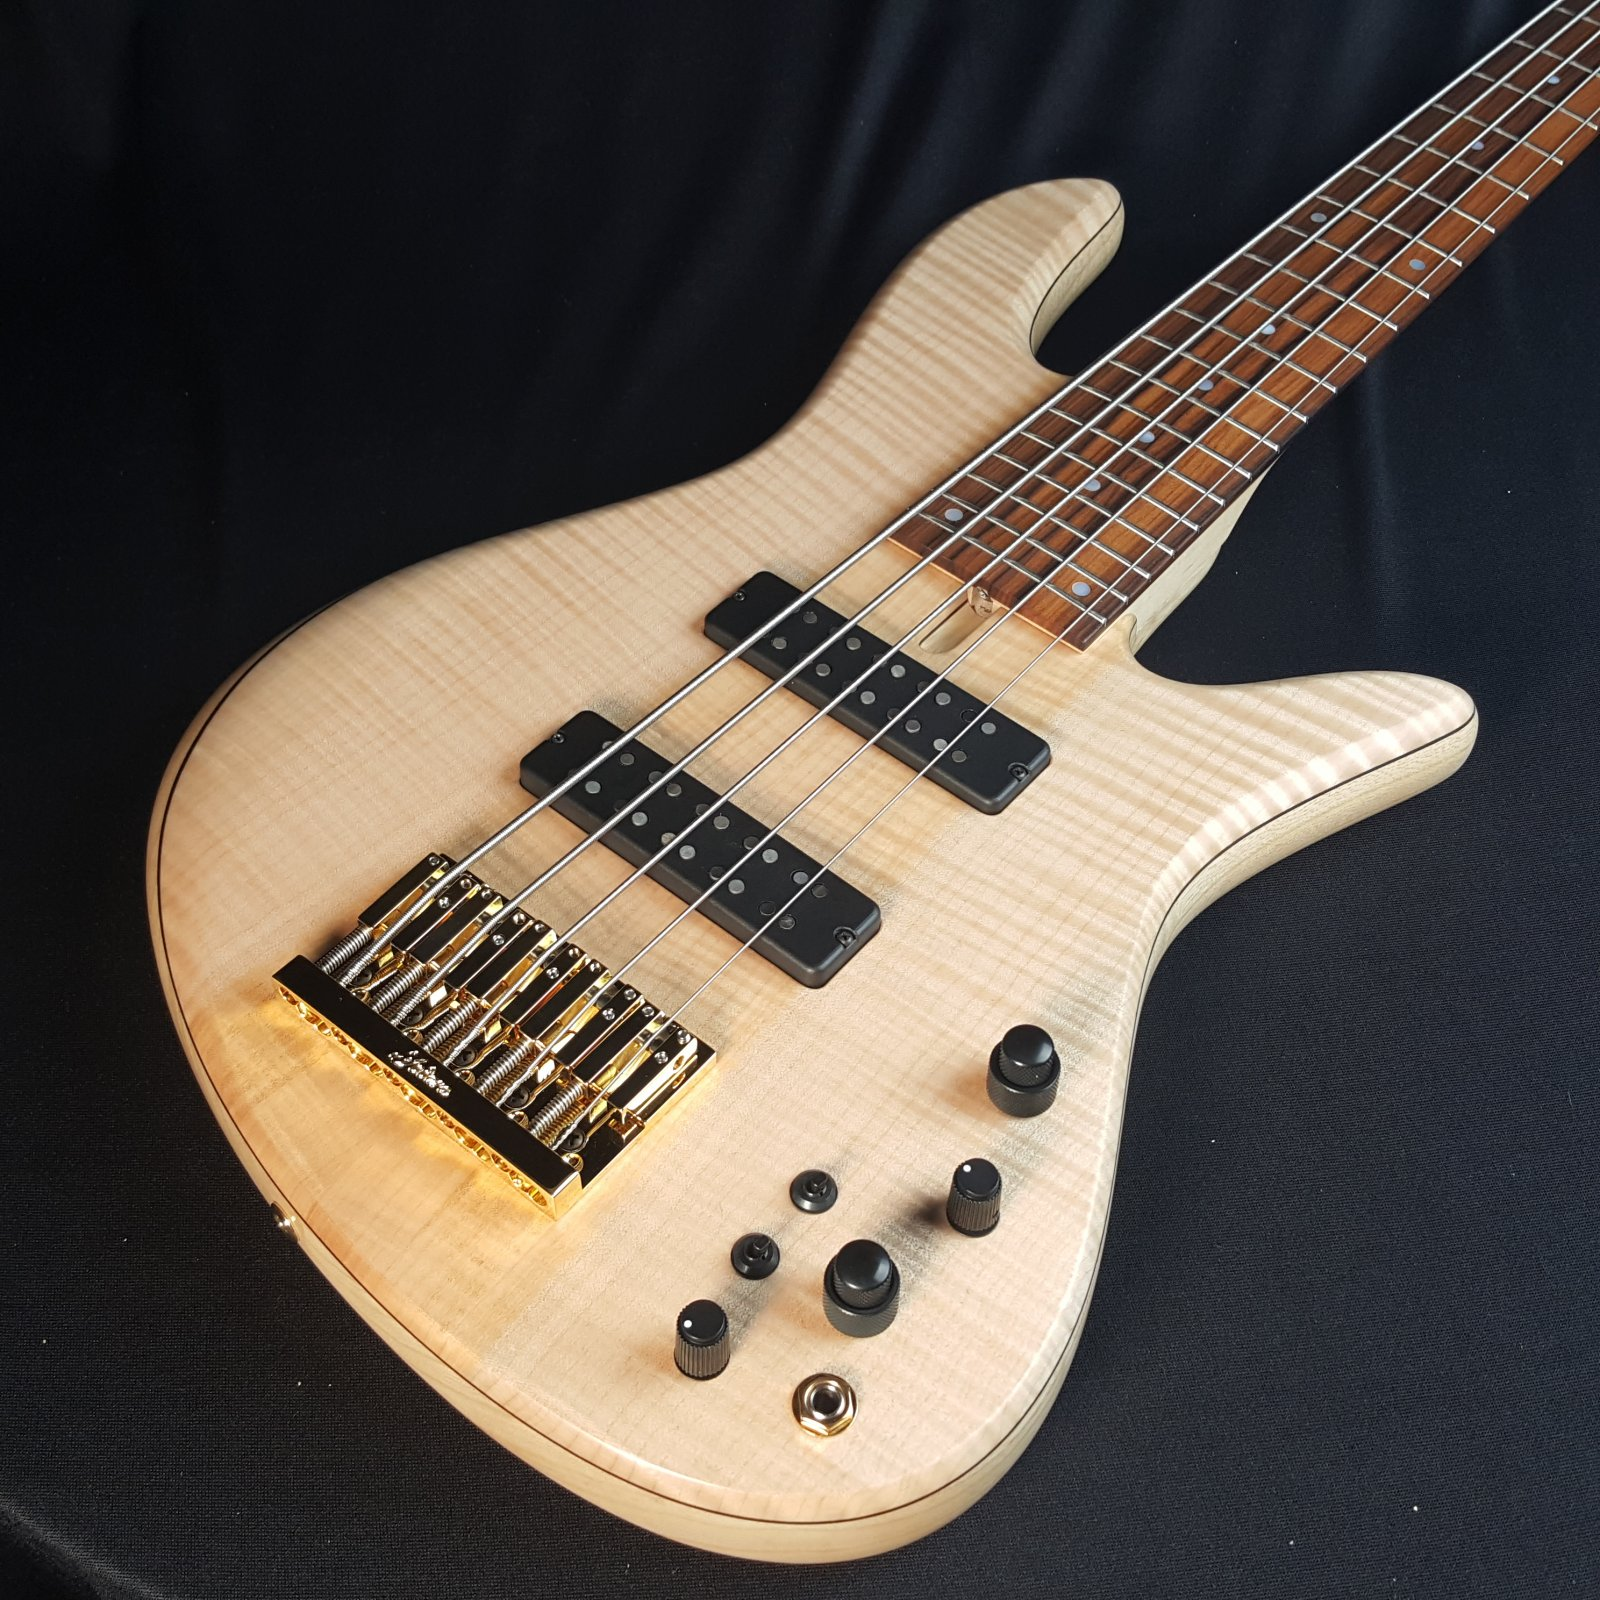 Fodera Emperor Standard 5 String Bass With Case 9lb 5oz